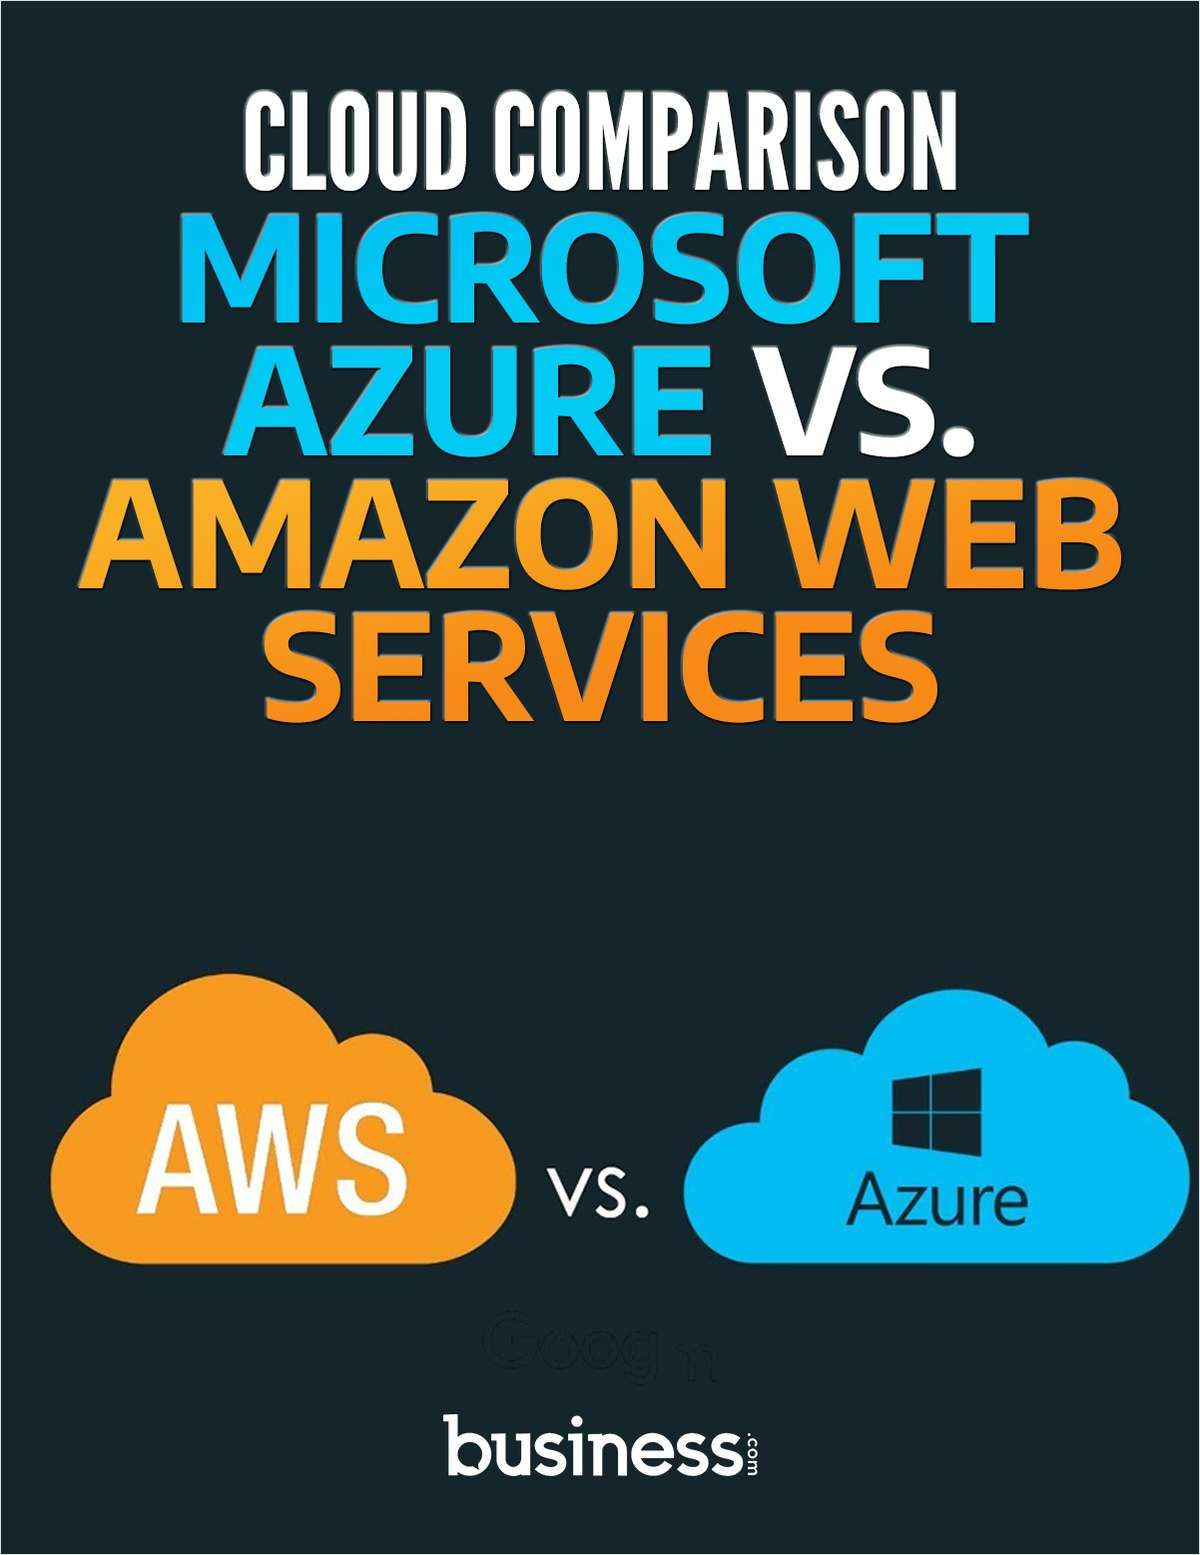 Cloud Comparison - Microsoft Azure vs. Amazon Web Services